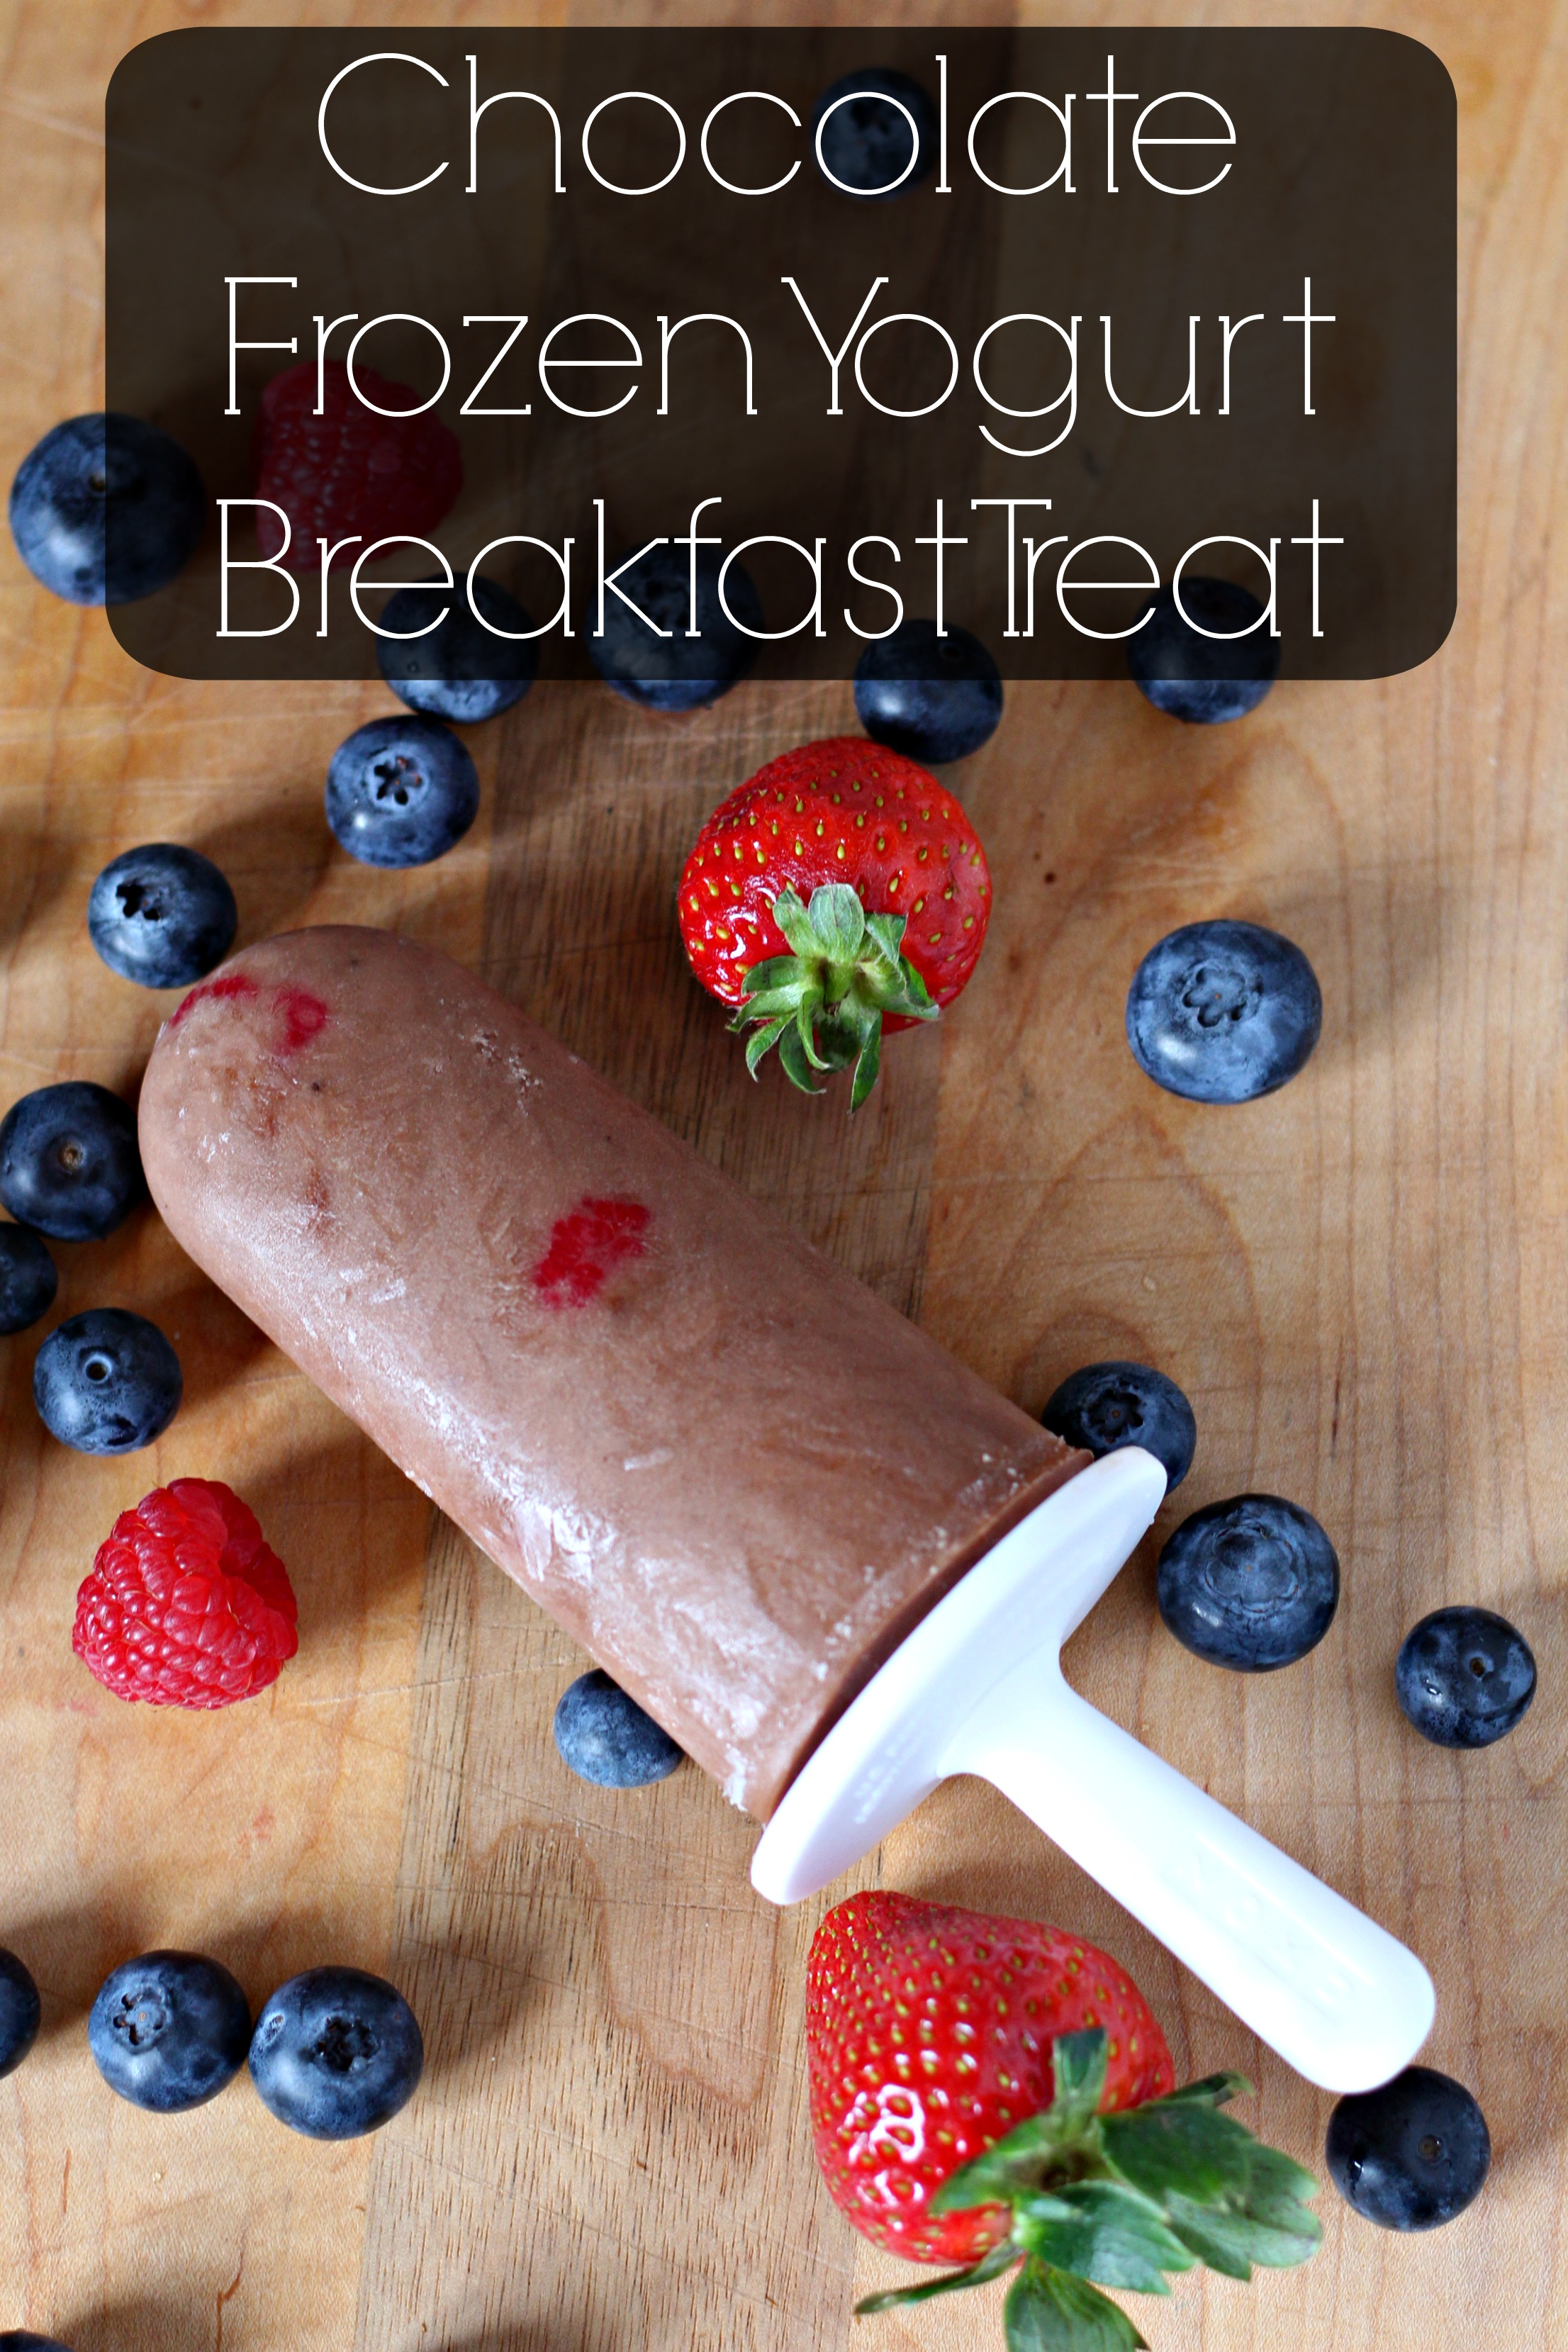 Chocolate Frozen Yogurt Breakfast Treat